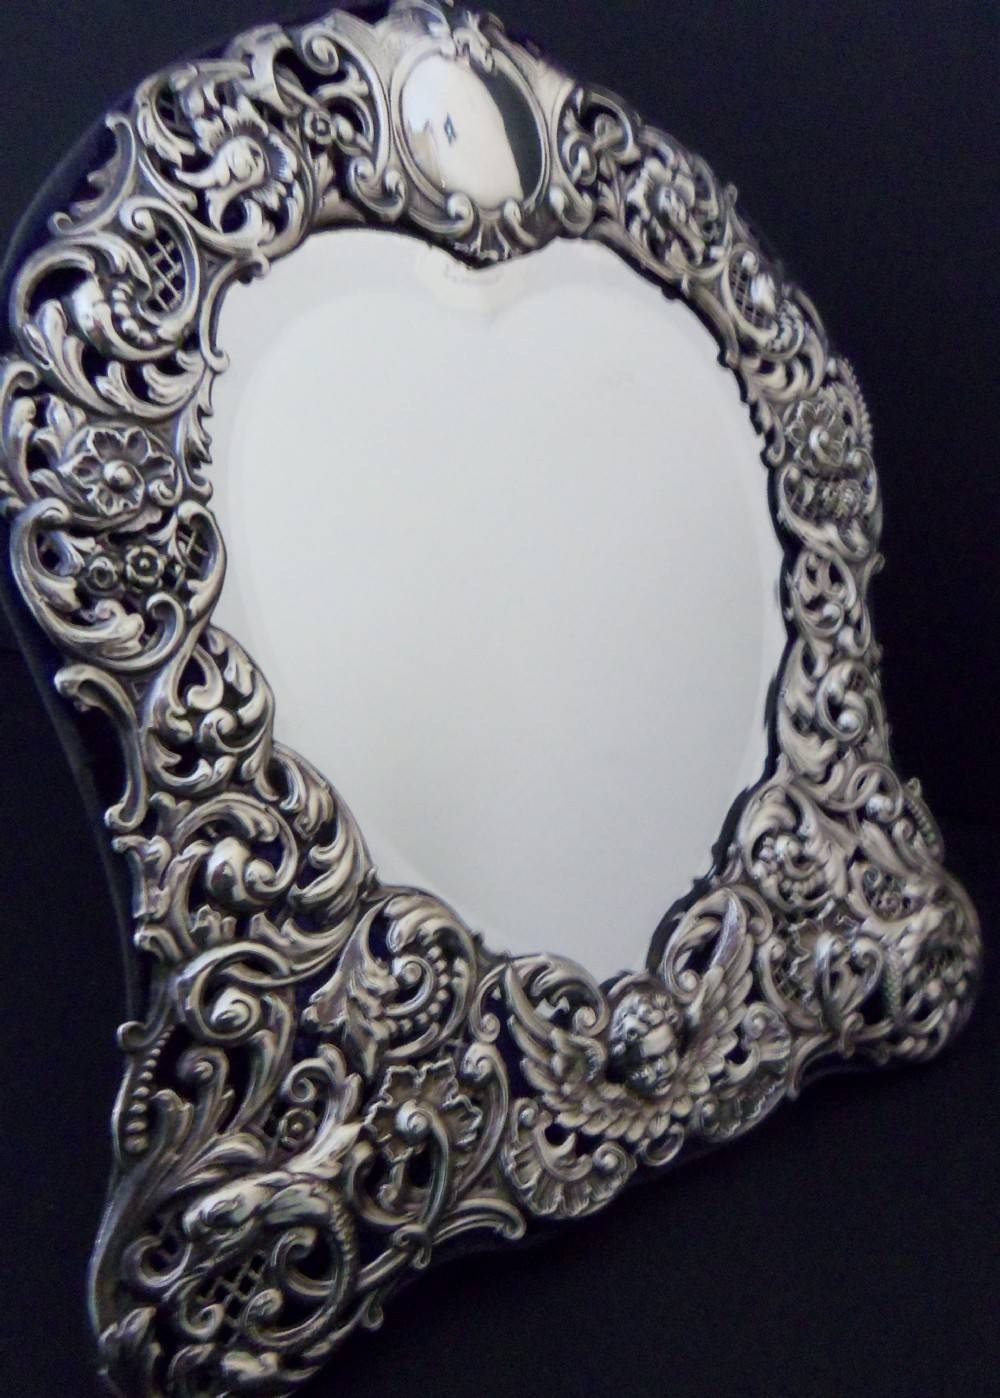 Antique Heart Shaped Silver Mirror - 1901 | 303439 with regard to Silver Antique Mirrors (Image 3 of 25)